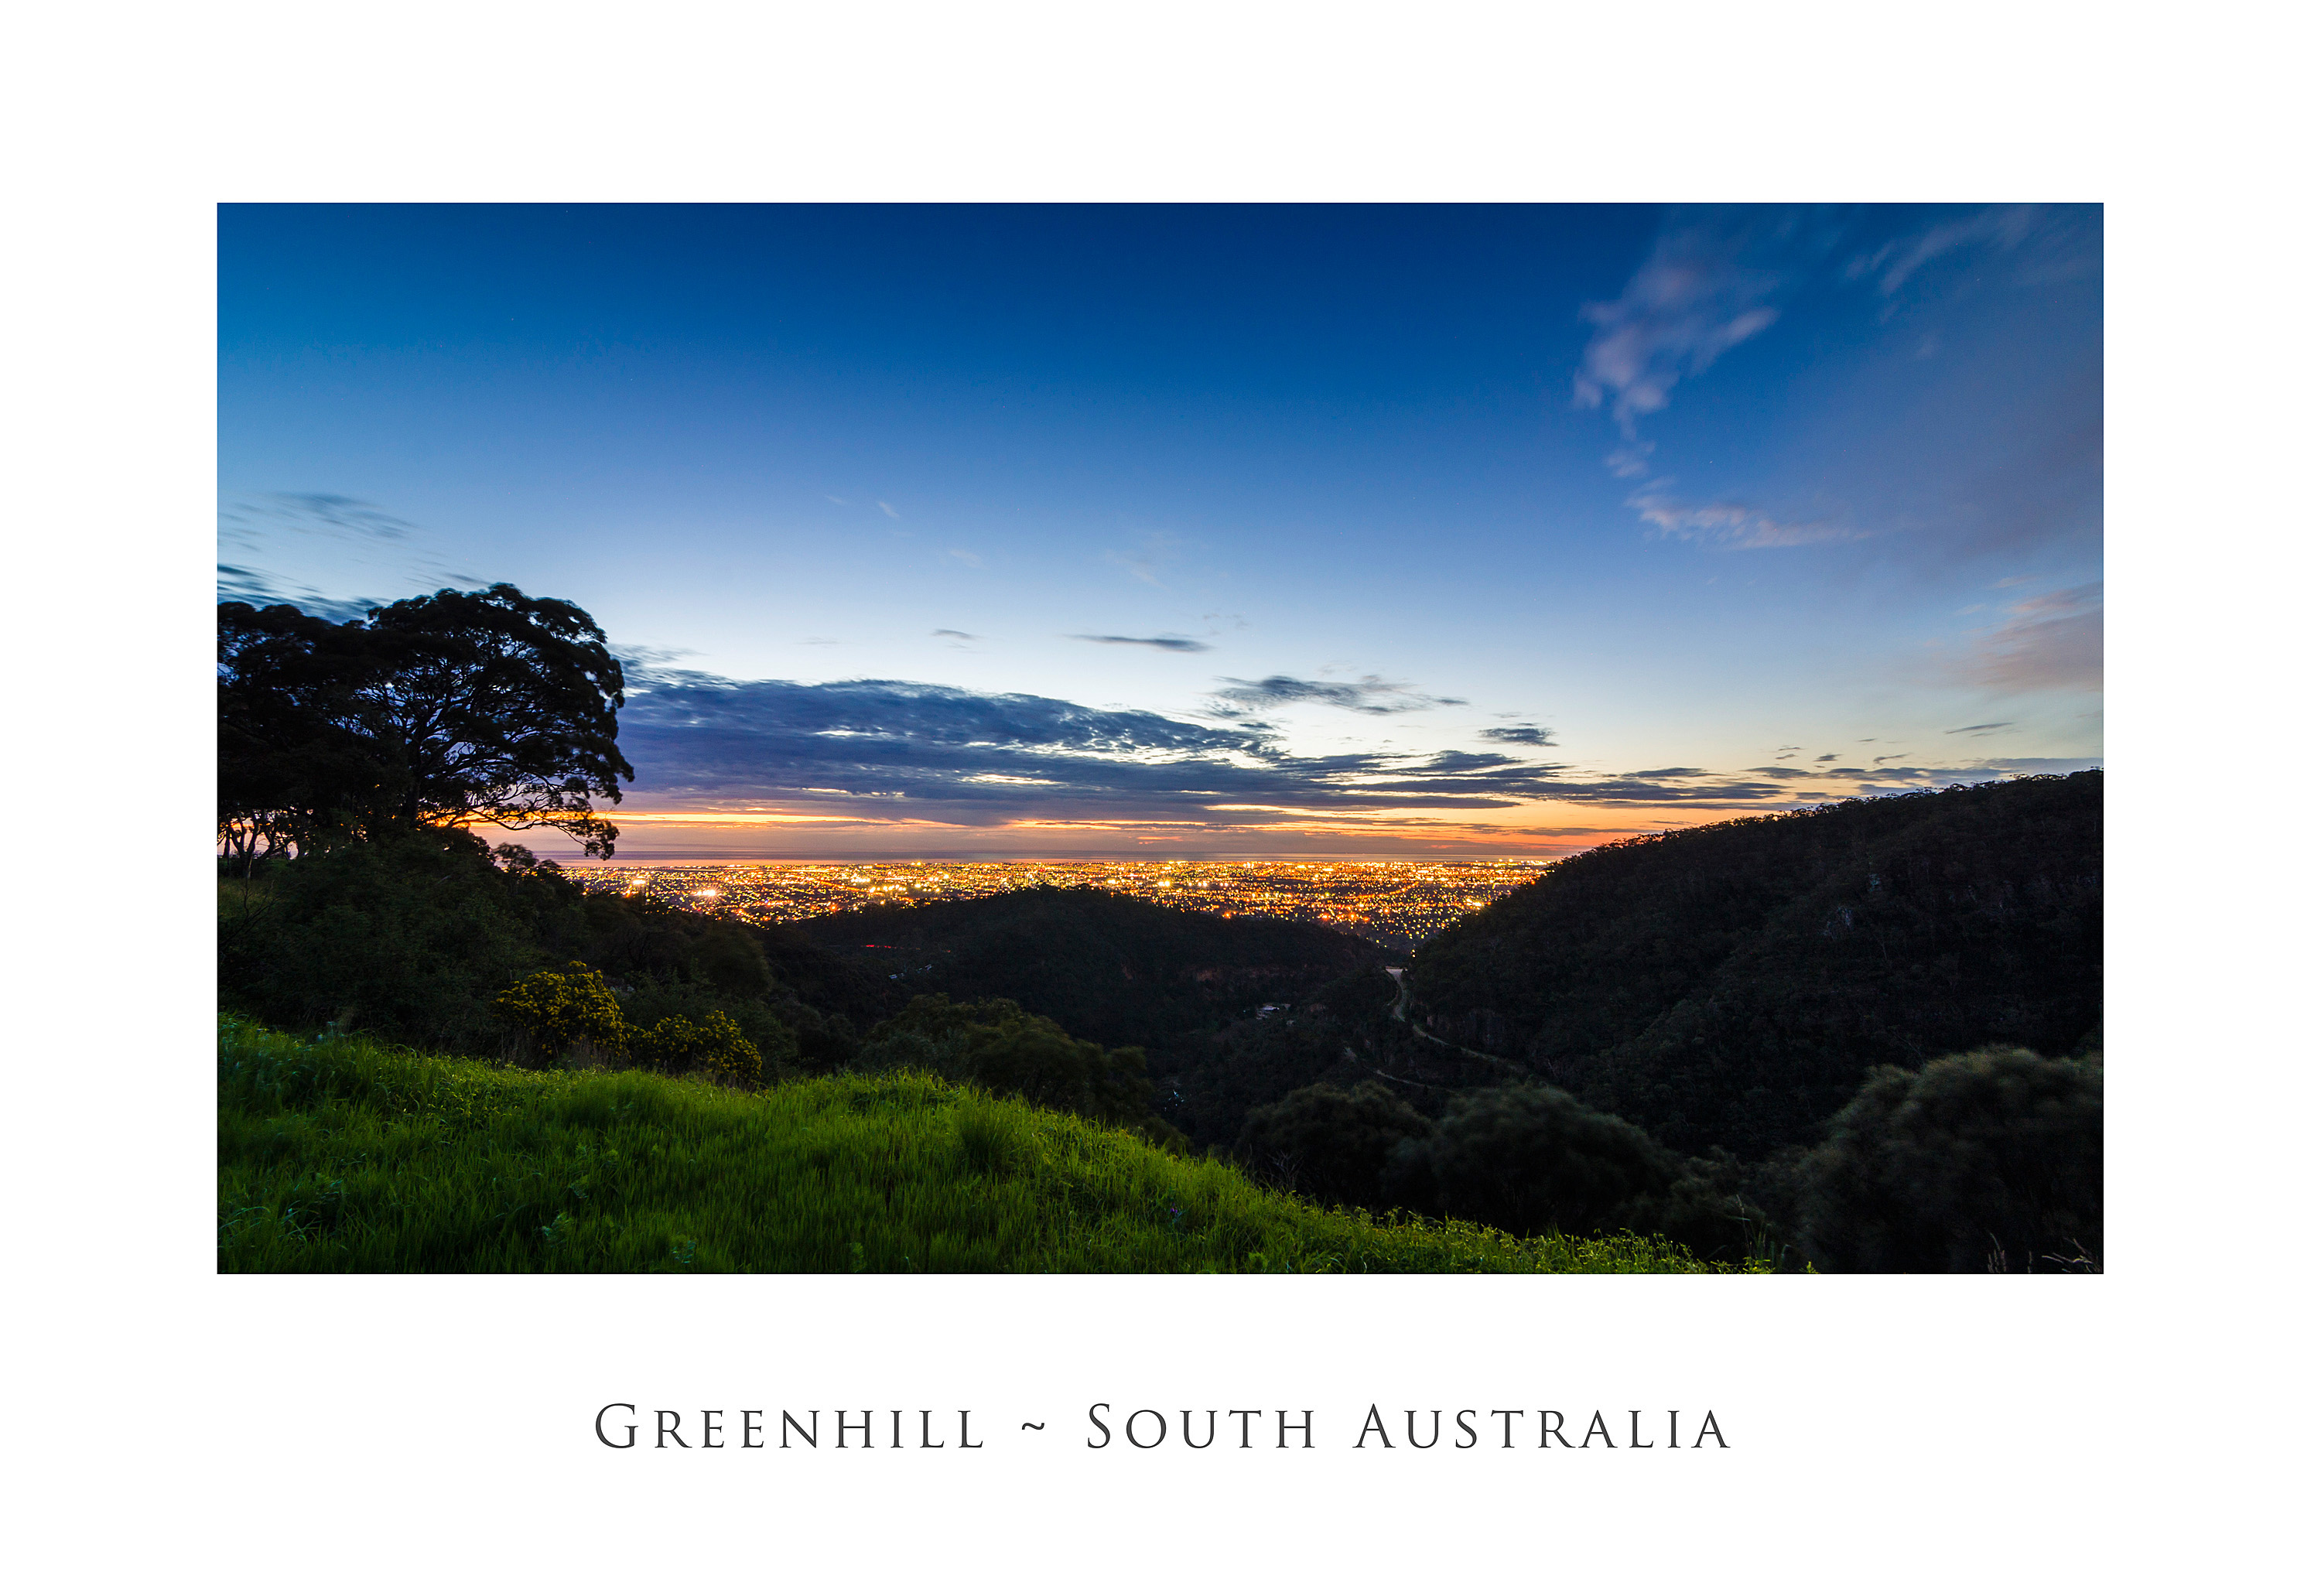 Greenhill Sunset